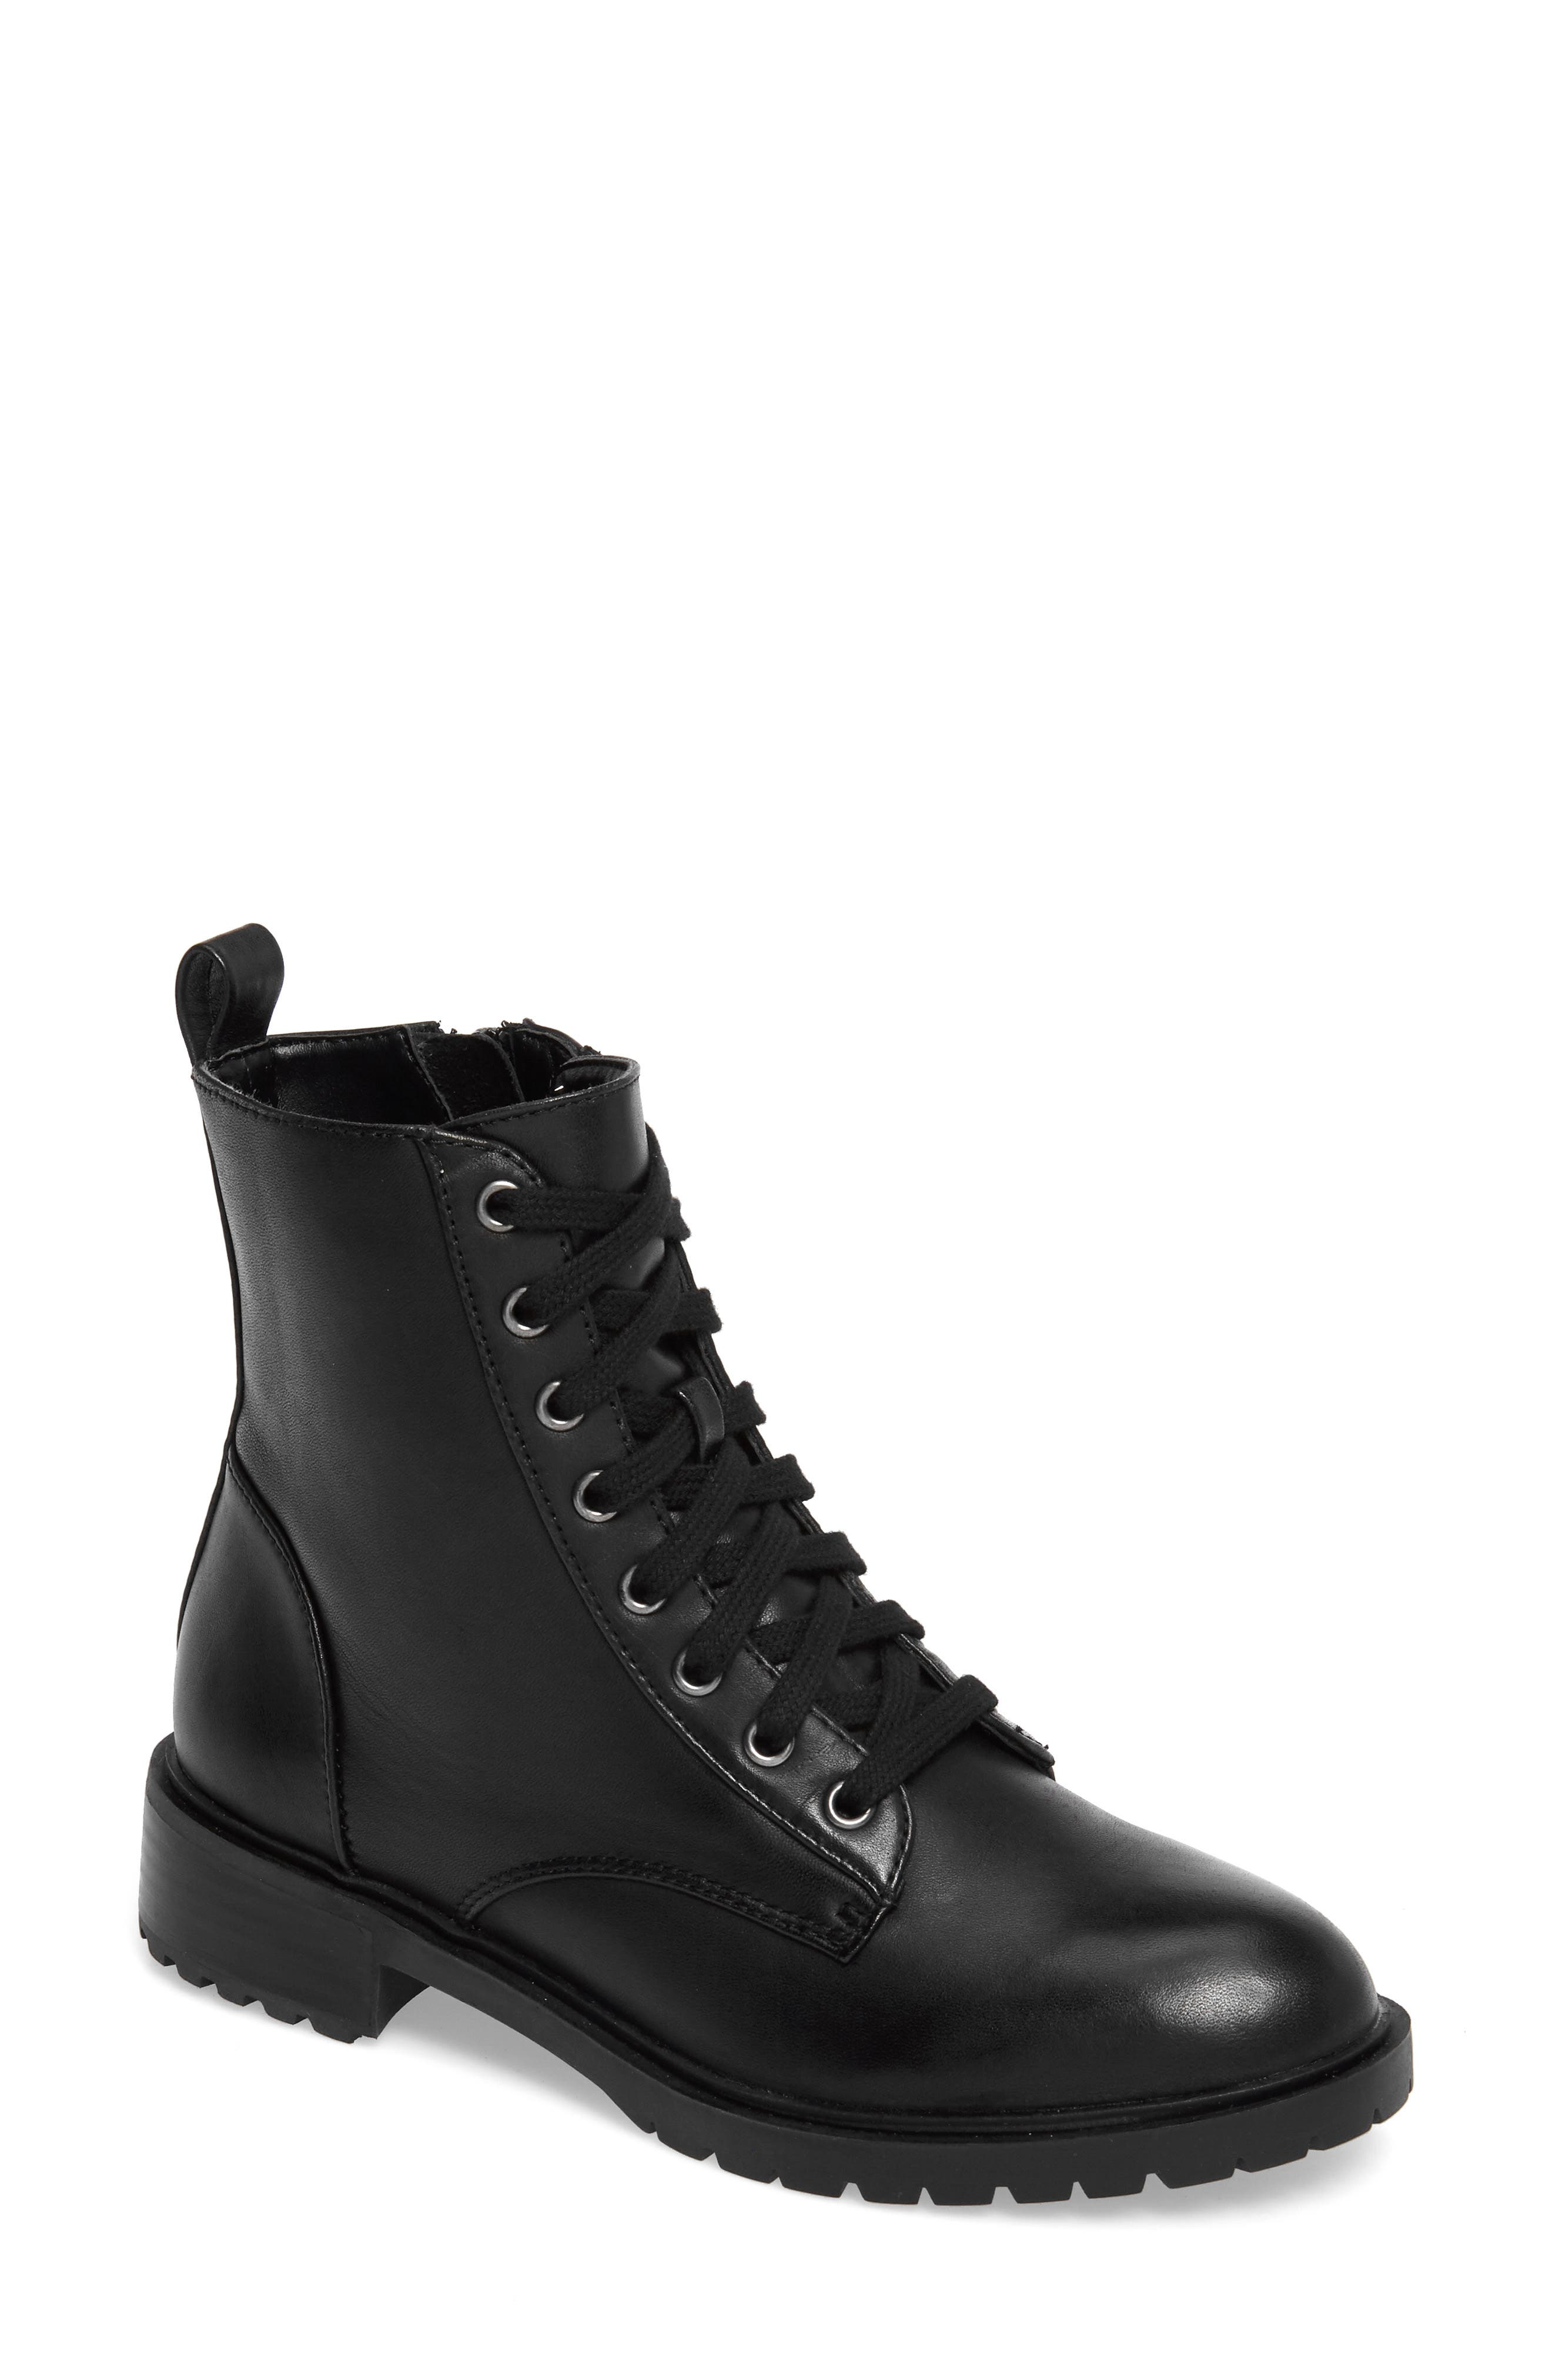 Officer Combat Boot,                             Main thumbnail 1, color,                             001